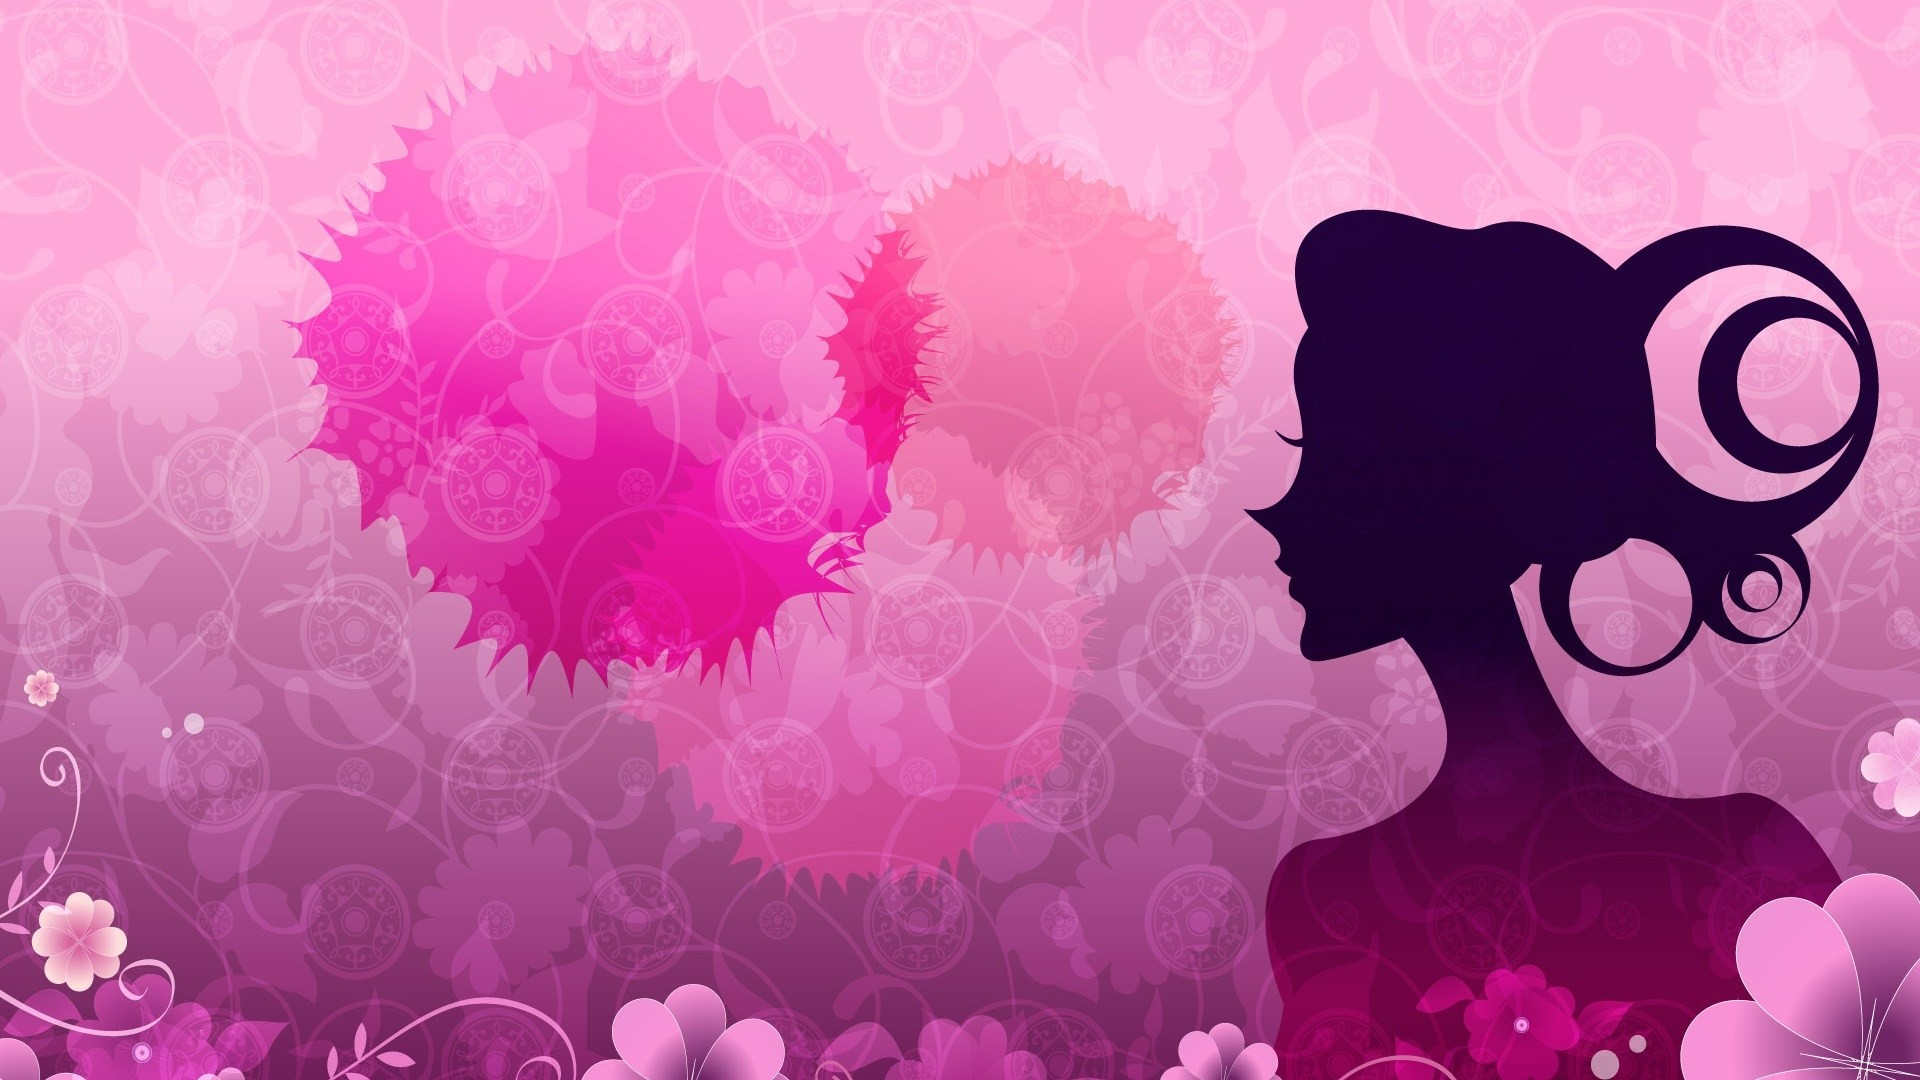 Girly Love Wallpaper : cute Girly Wallpapers for Laptop (64+ images)